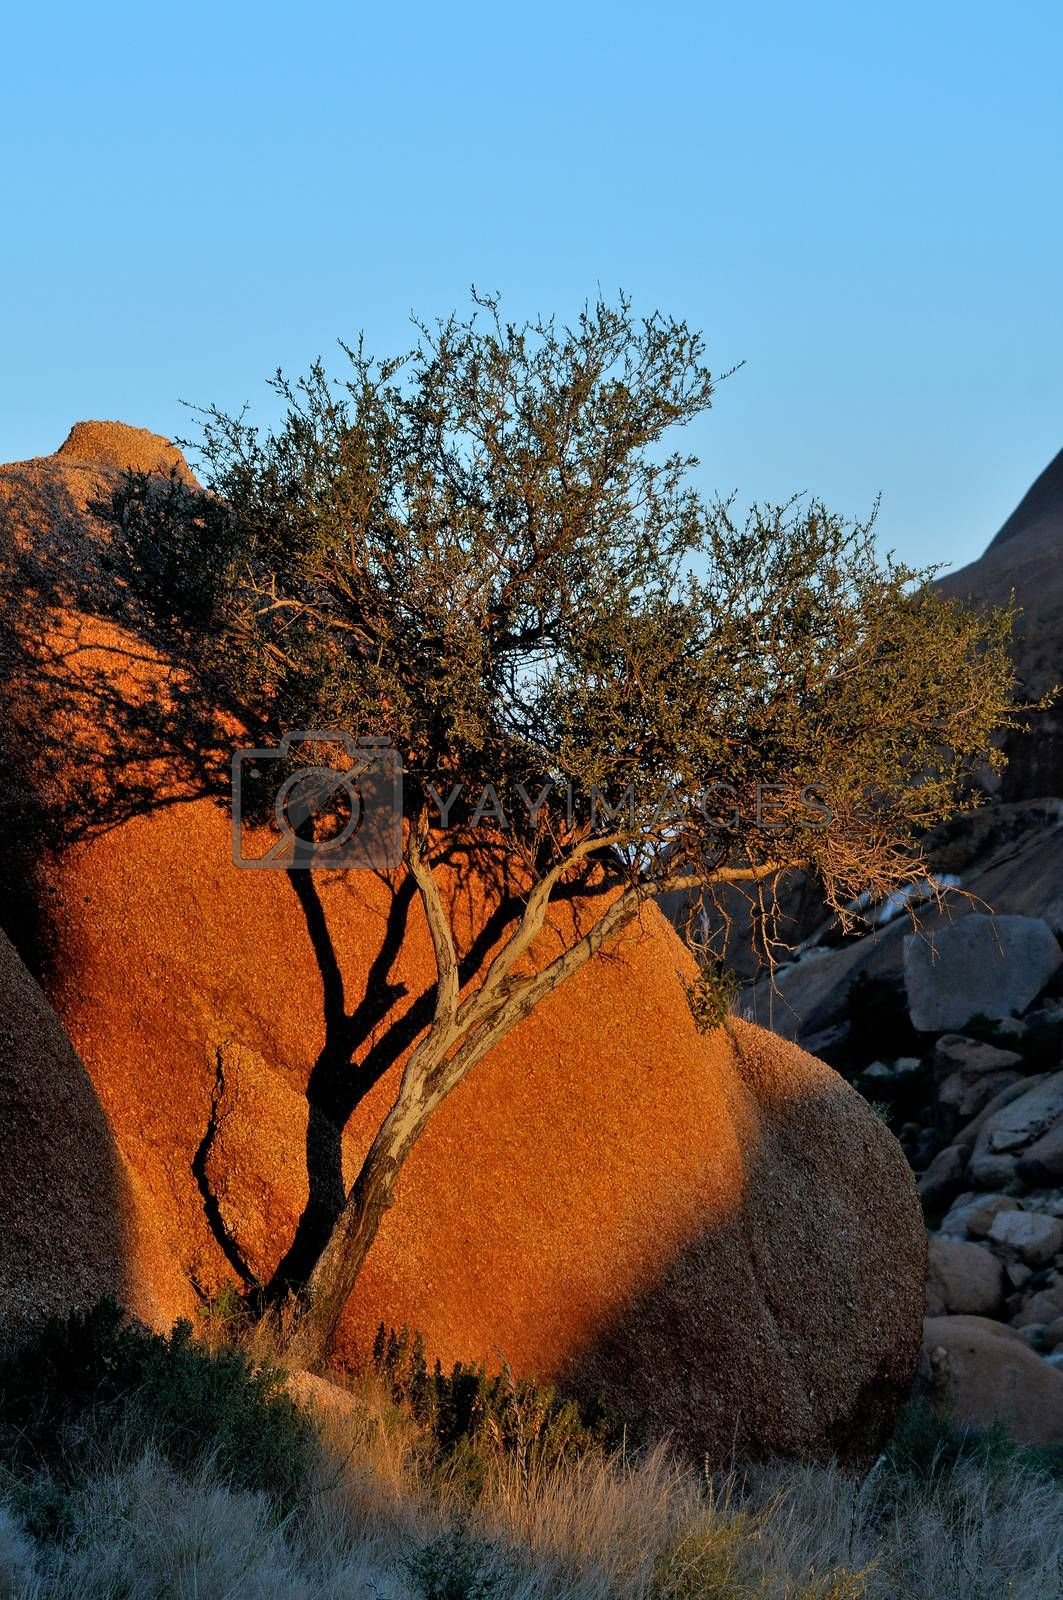 Royalty free image of Rock formation at Spitzkoppe by dpreezg